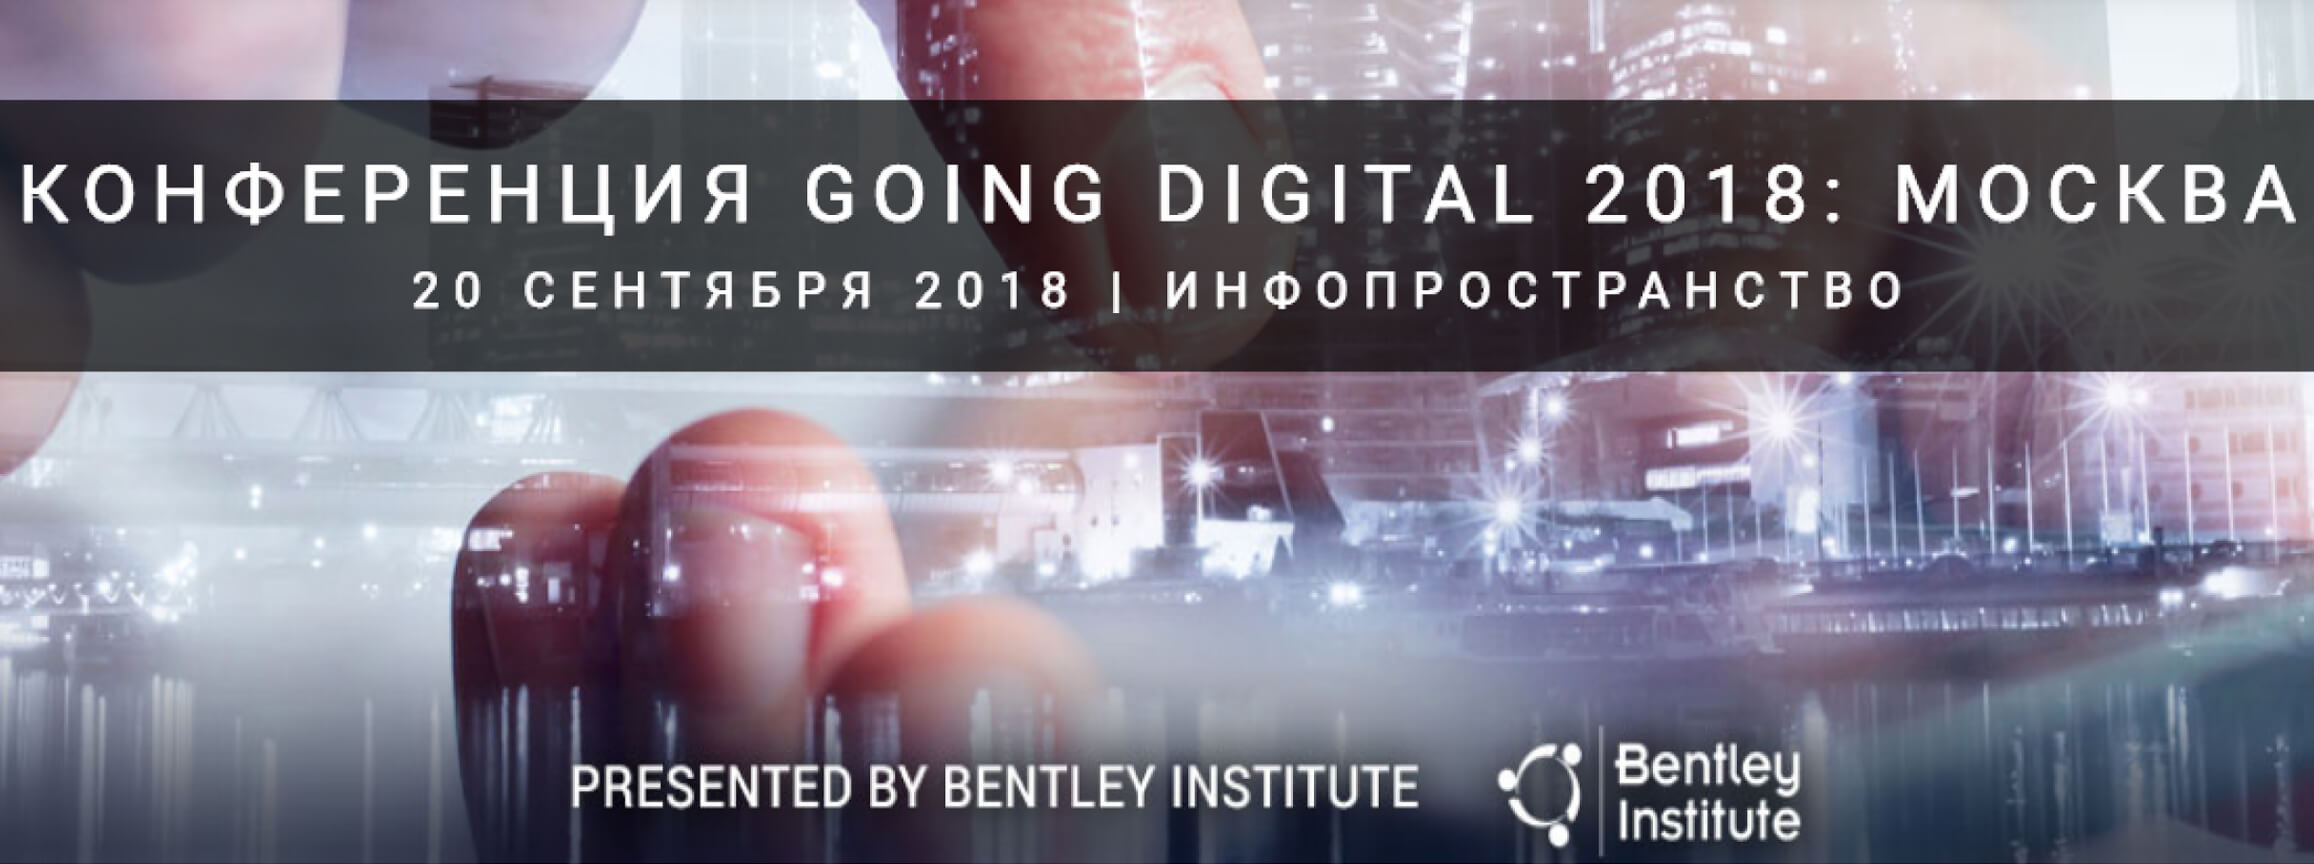 Конференция Bentley Going Digital